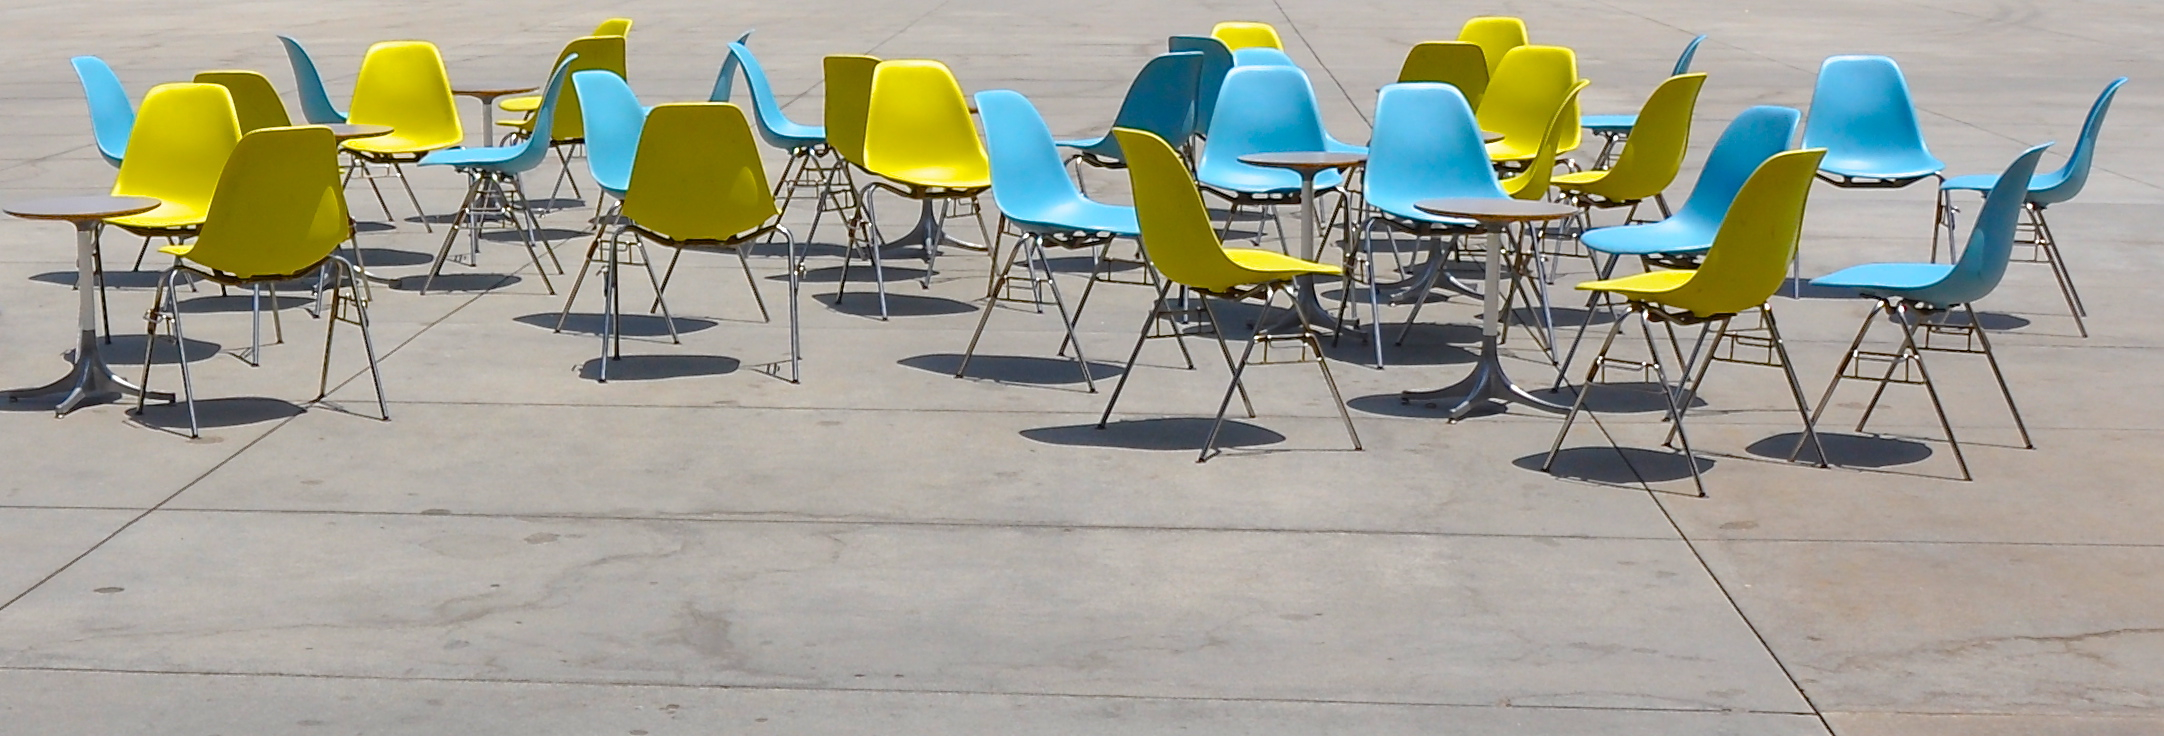 LACMA Chairs